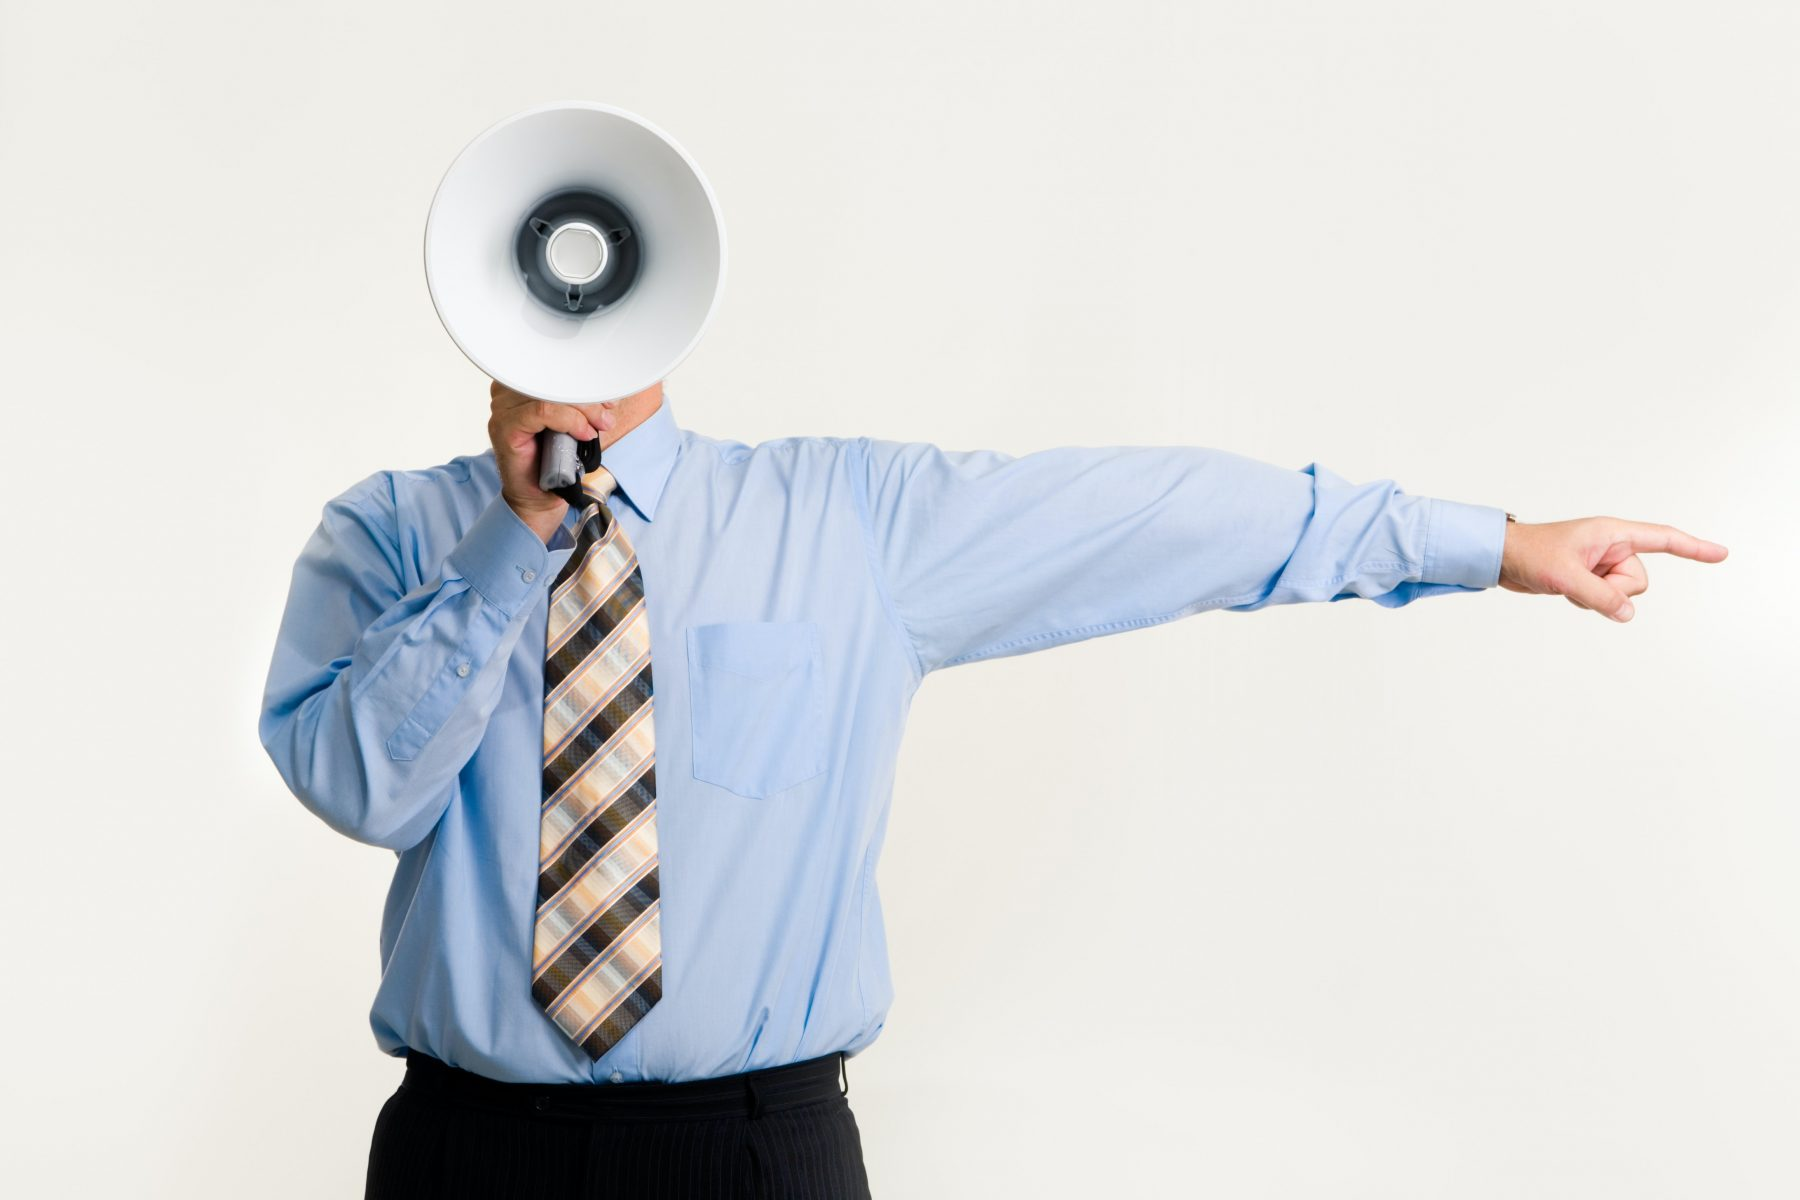 boss pointing with megaphone